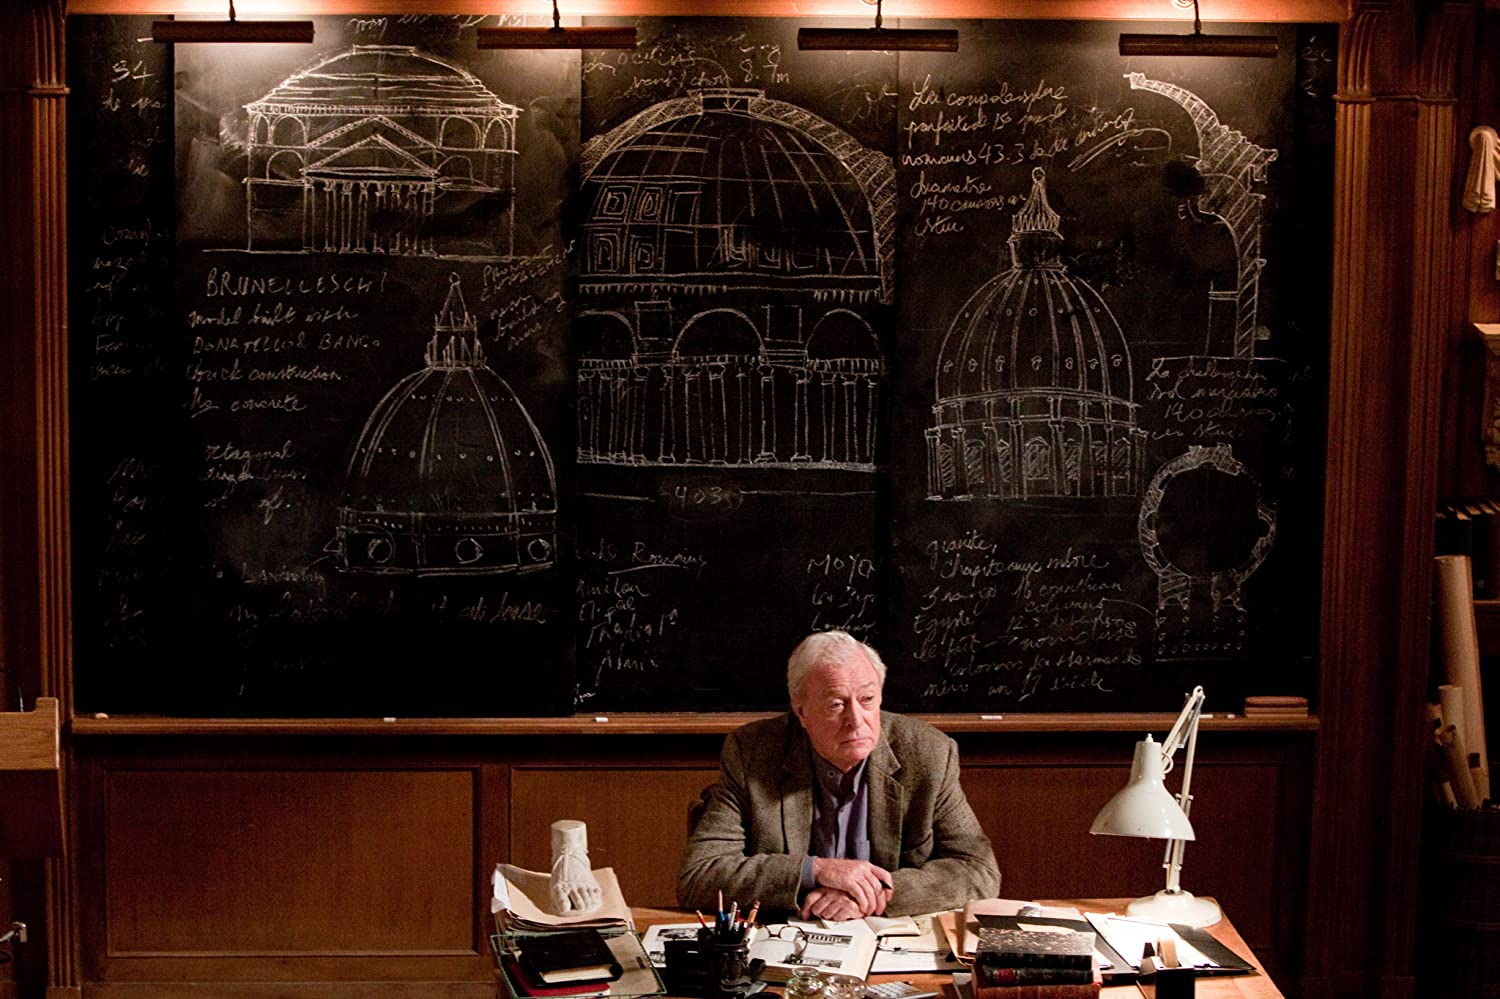 Michael Caine in Inception (2010)